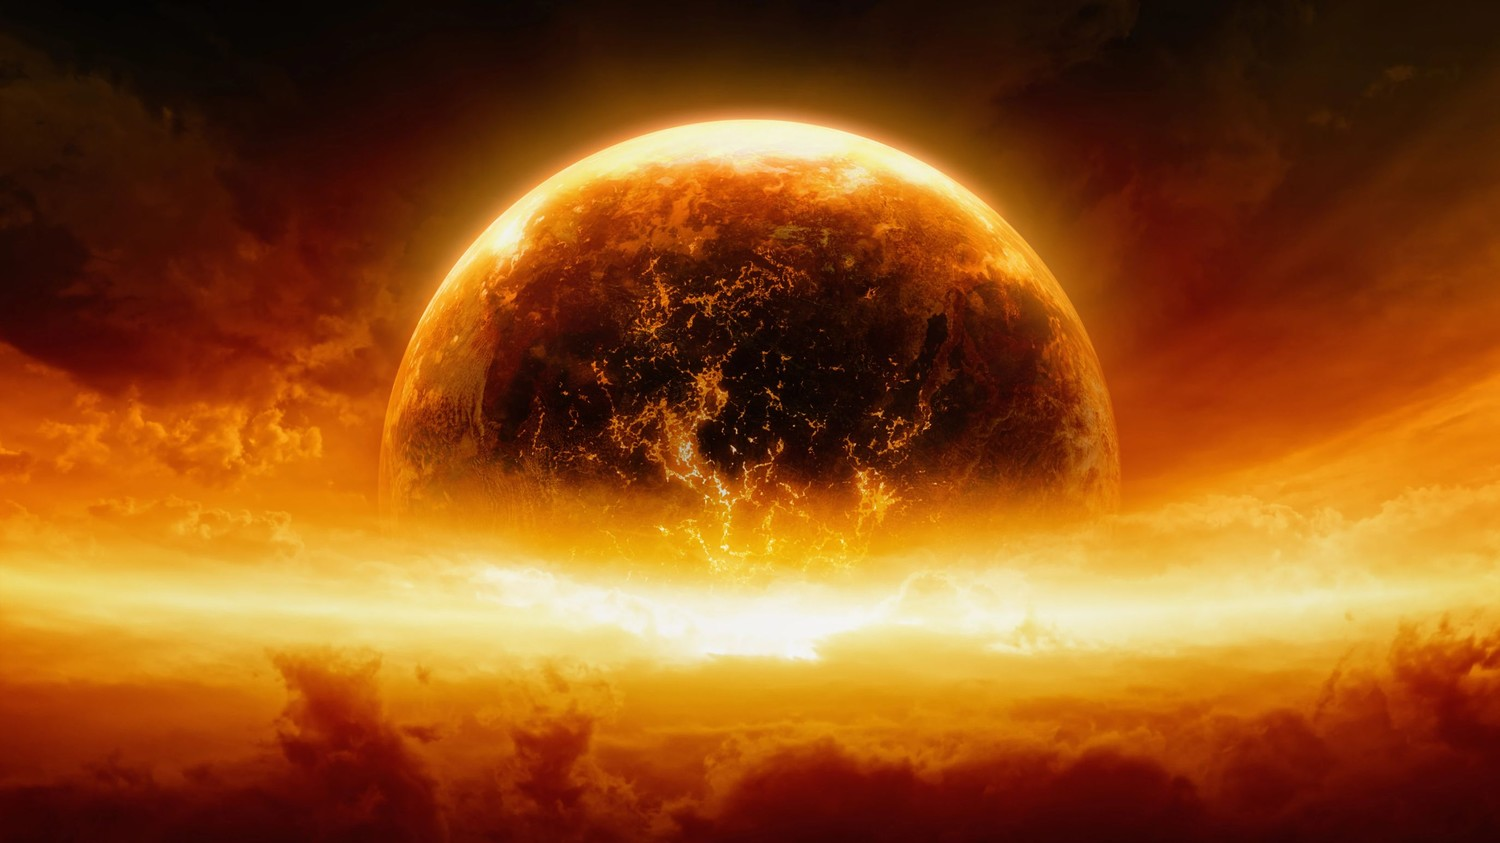 The end of the world in the future the Kuiper belt may save humanity